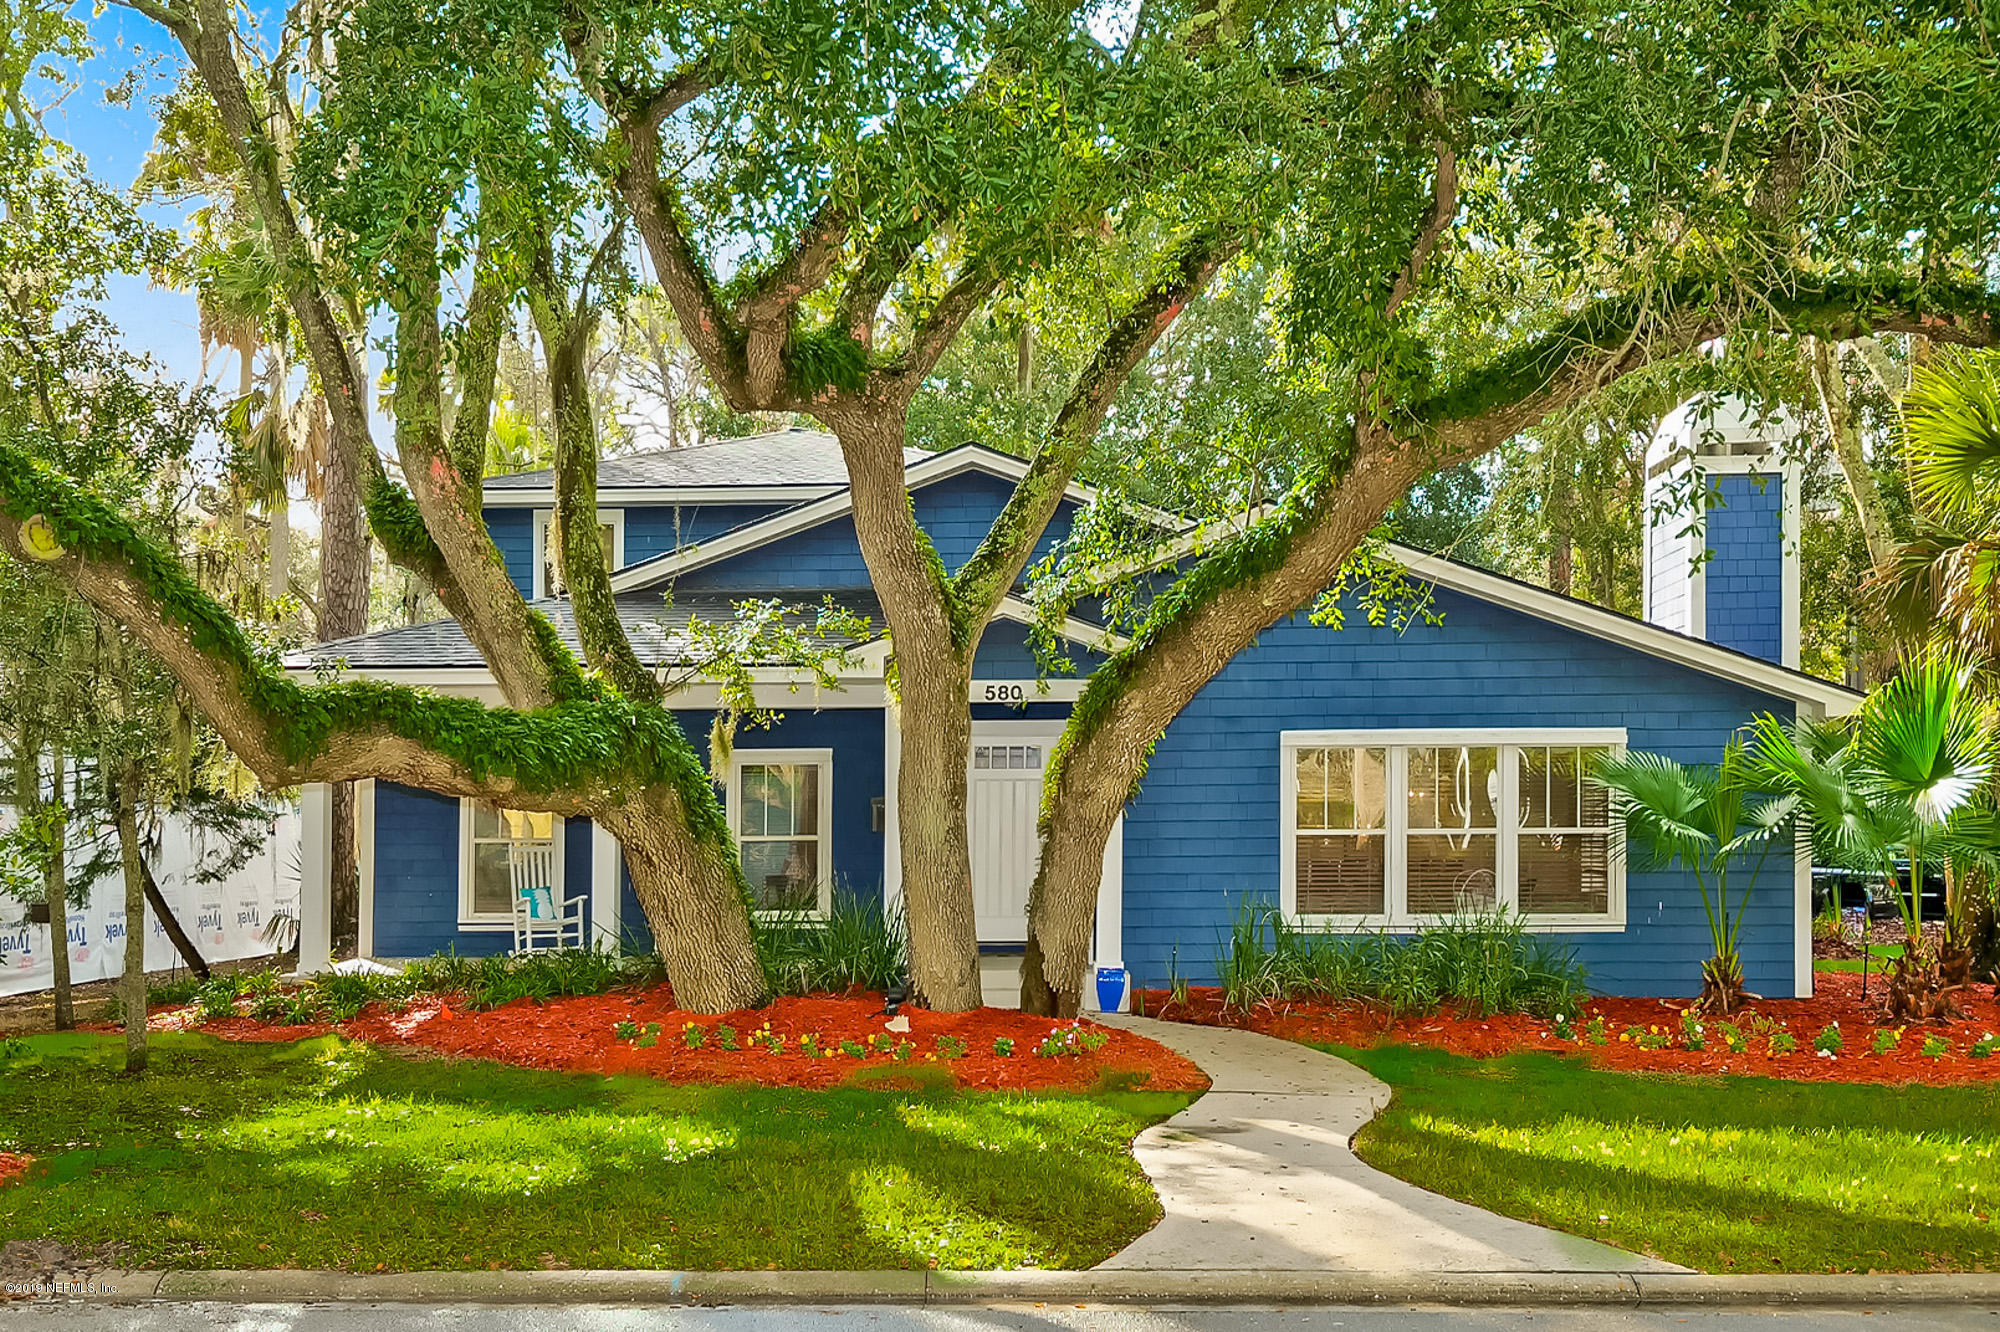 580 SHERRY, ATLANTIC BEACH, FLORIDA 32233, 4 Bedrooms Bedrooms, ,3 BathroomsBathrooms,Residential - single family,For sale,SHERRY,978132